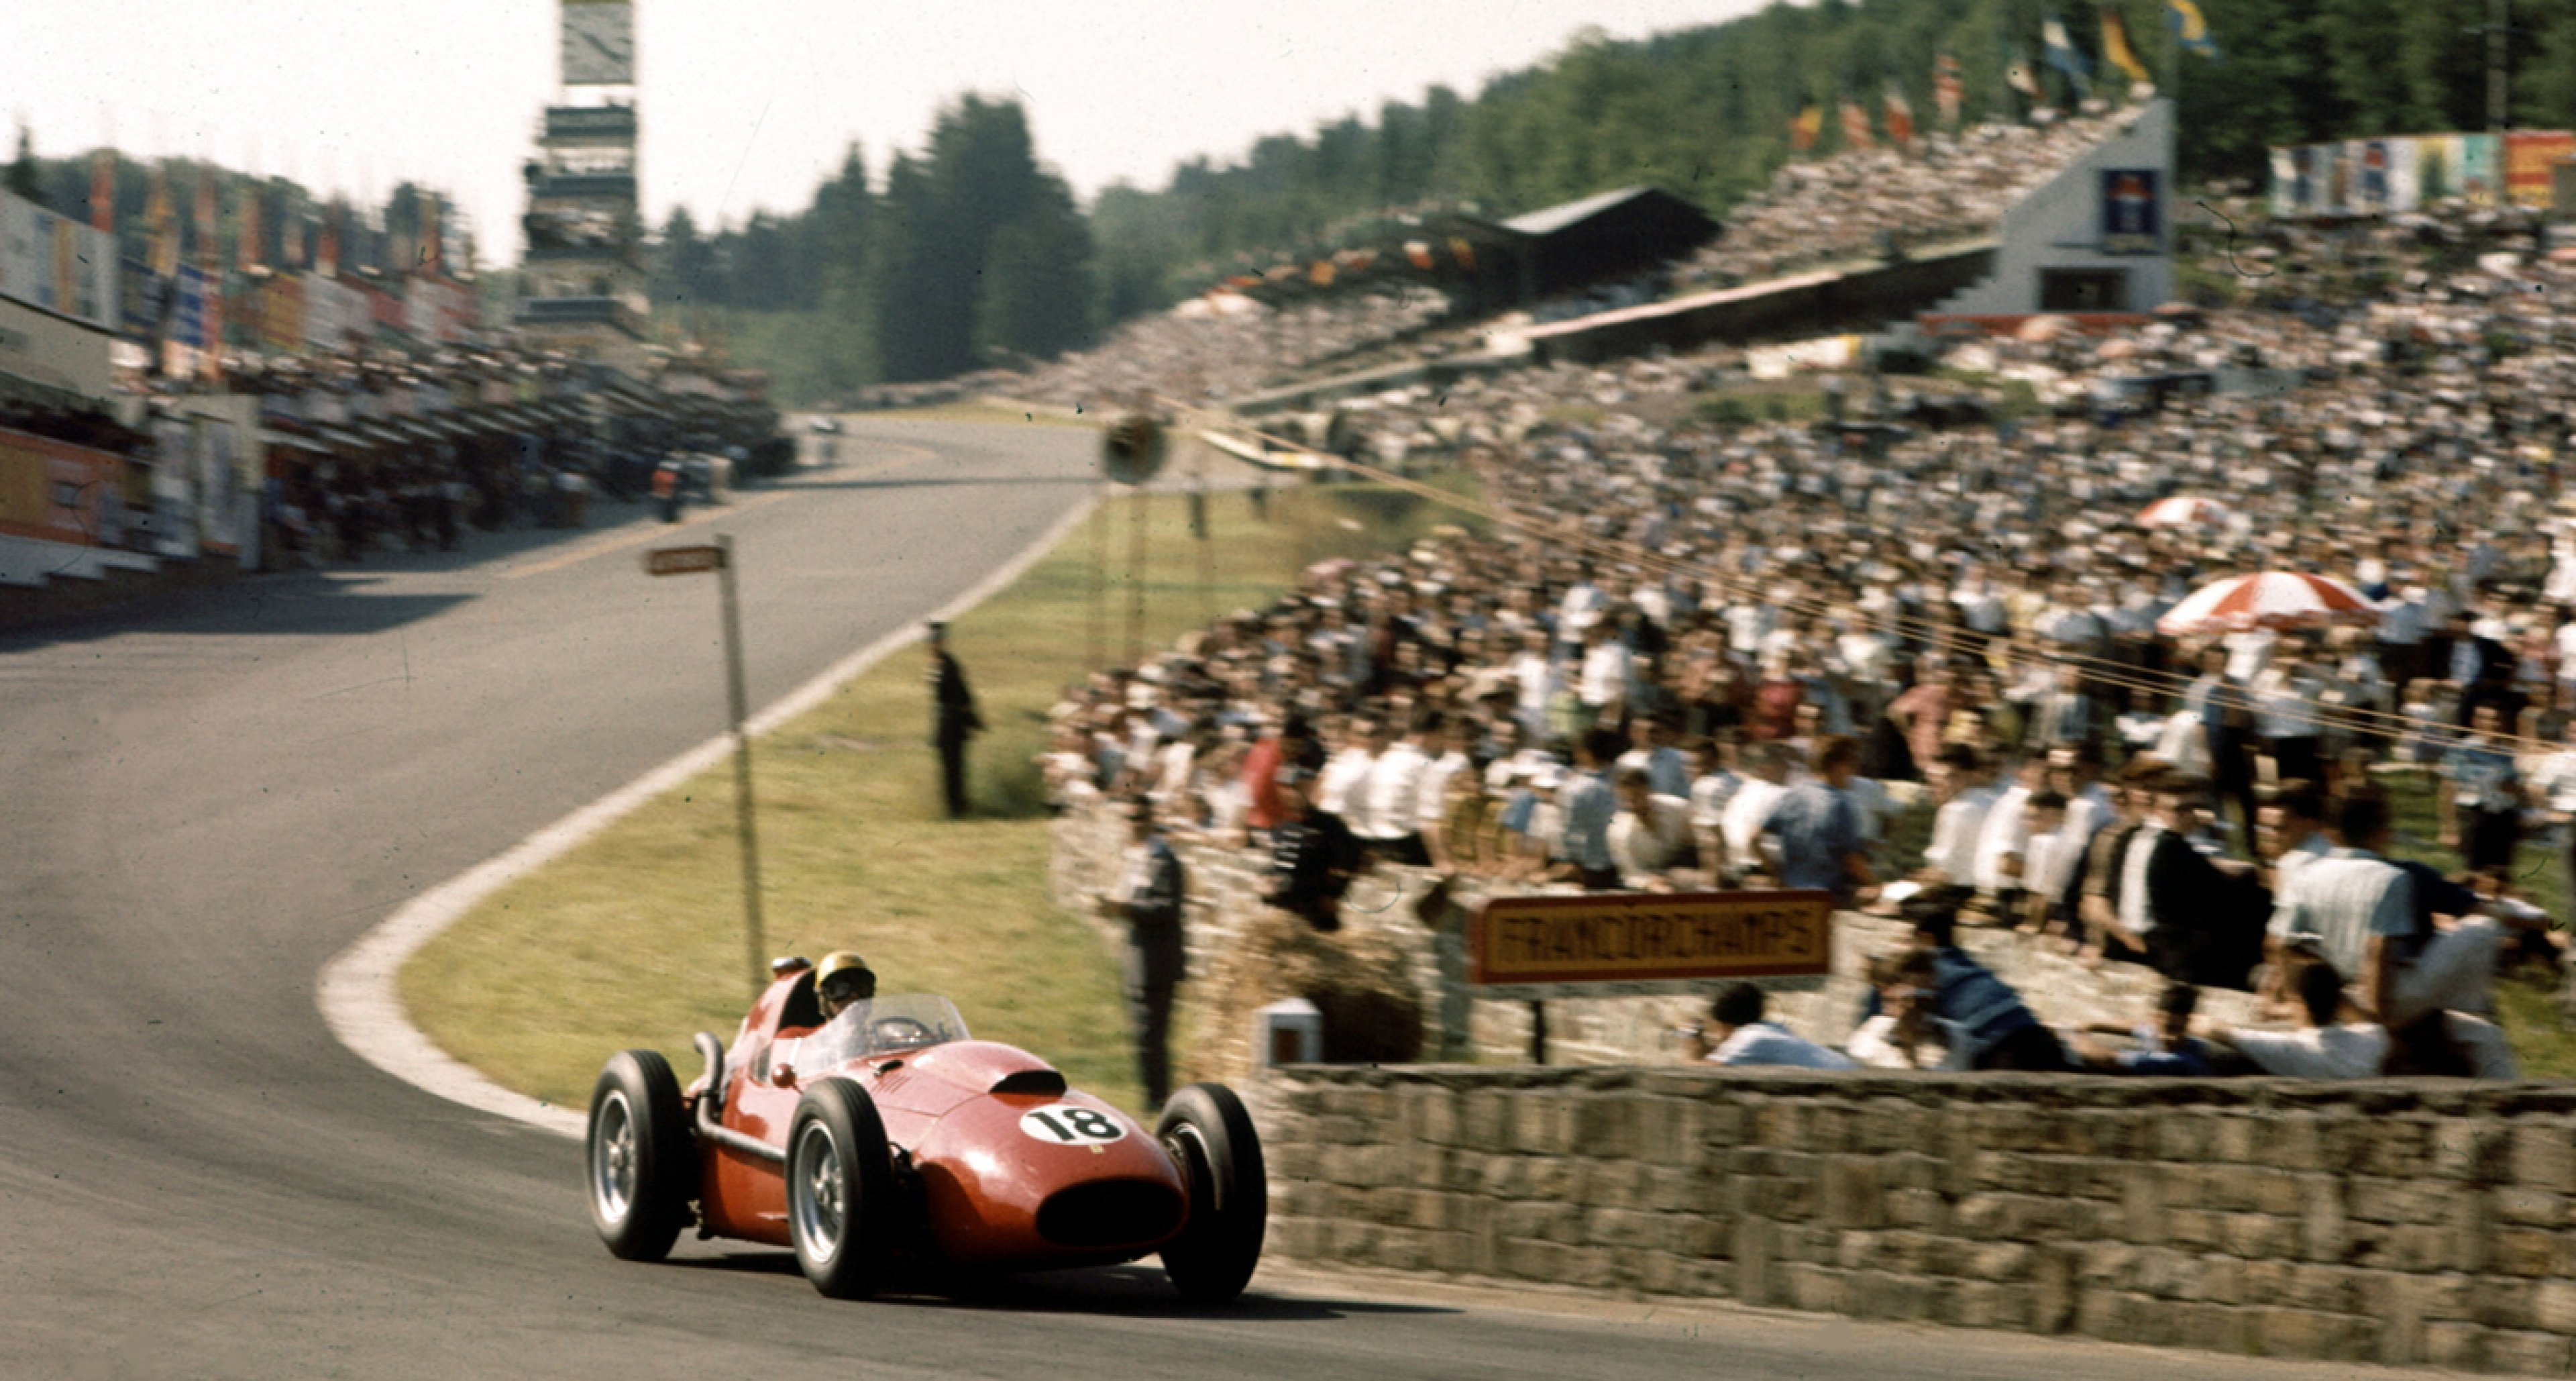 1958 Belgian Grand Prix, Luigi Musso at the wheel of his Ferrari Dino 246